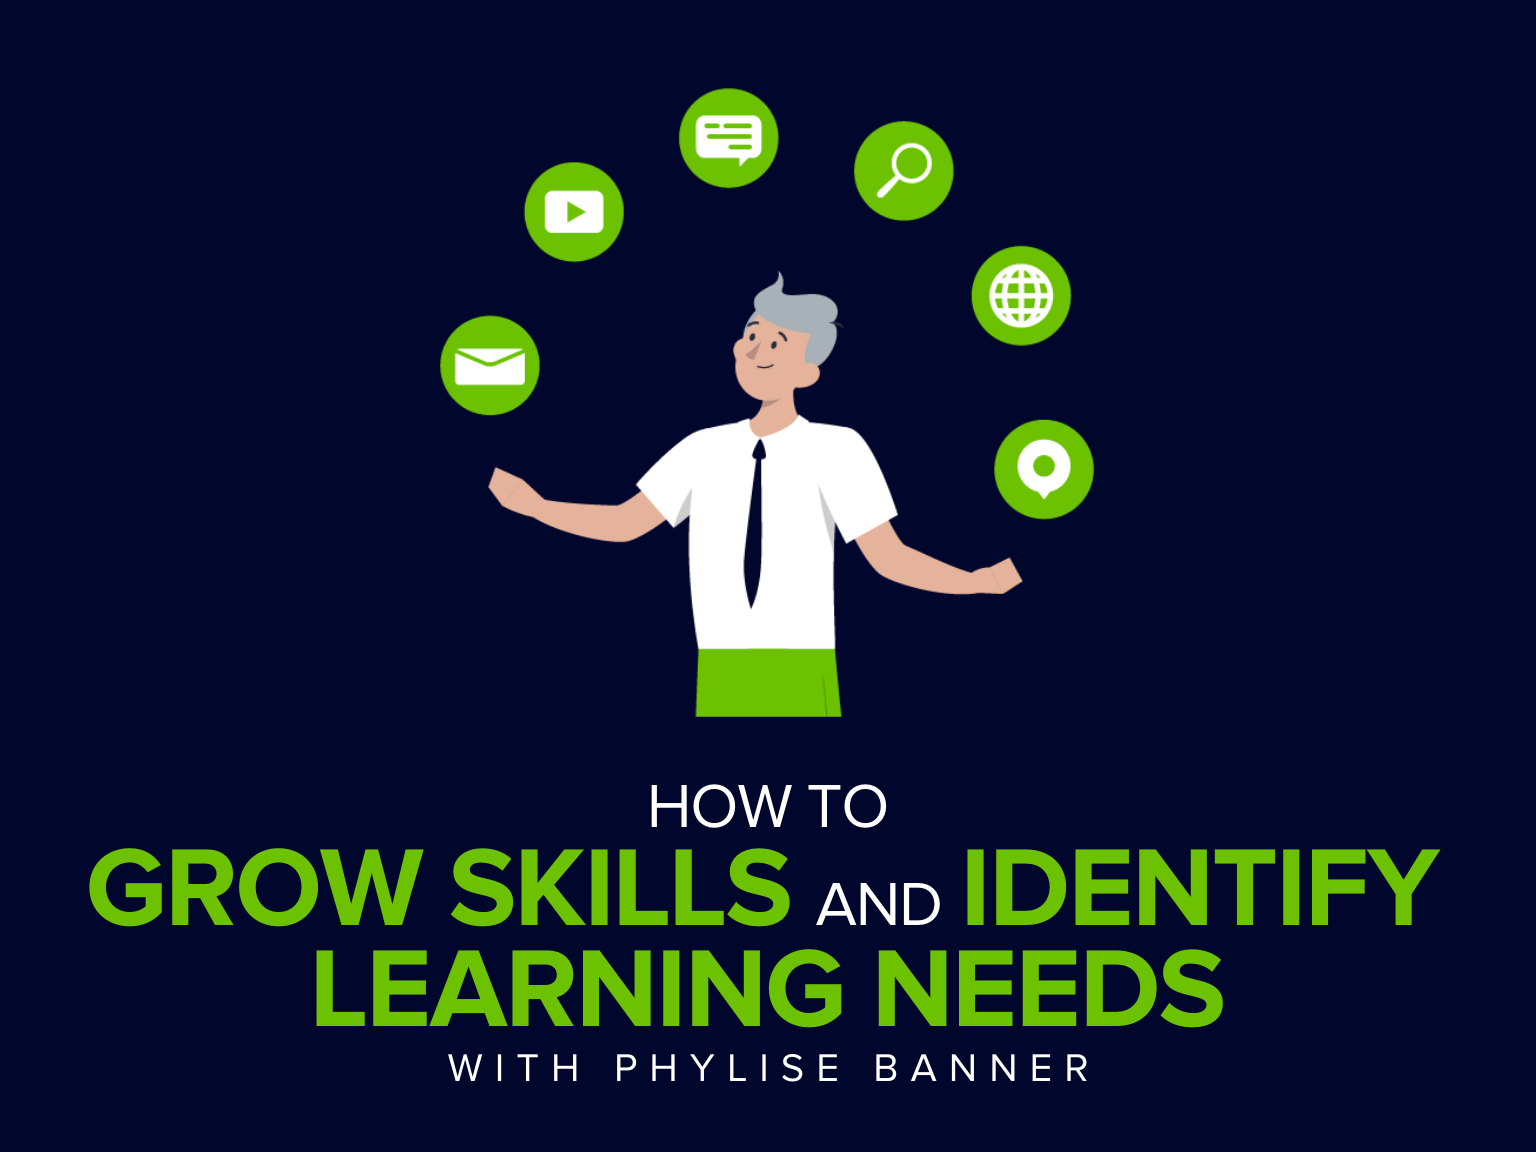 How to Grow Skills and Identify Learning Needs with Phylise Banner